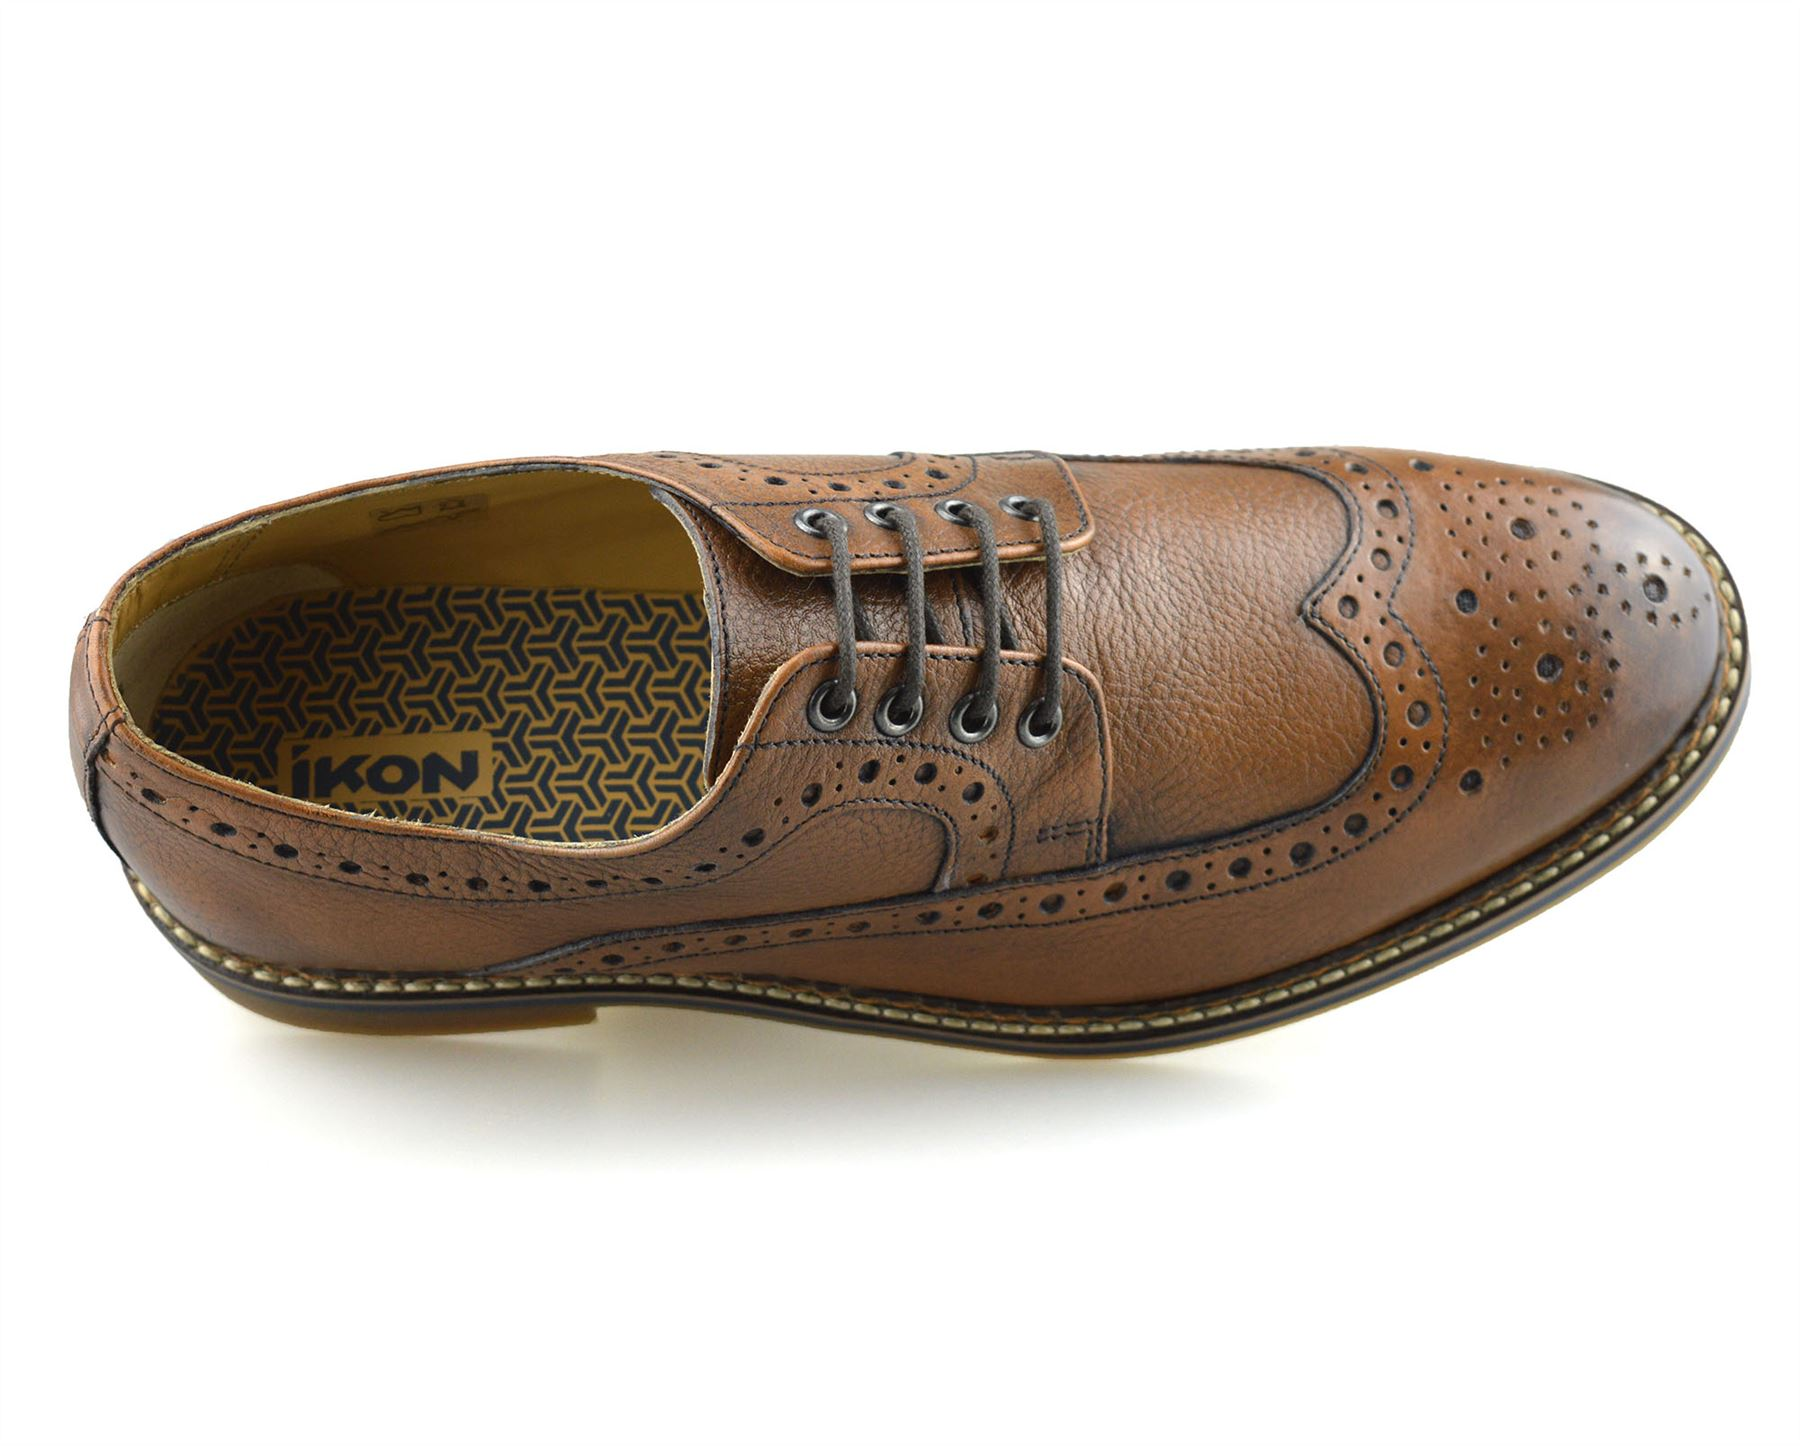 Mens-New-Ikon-Leather-Casual-Smart-Lace-Up-Oxford-Brogues-Work-Office-Shoes-Size thumbnail 17